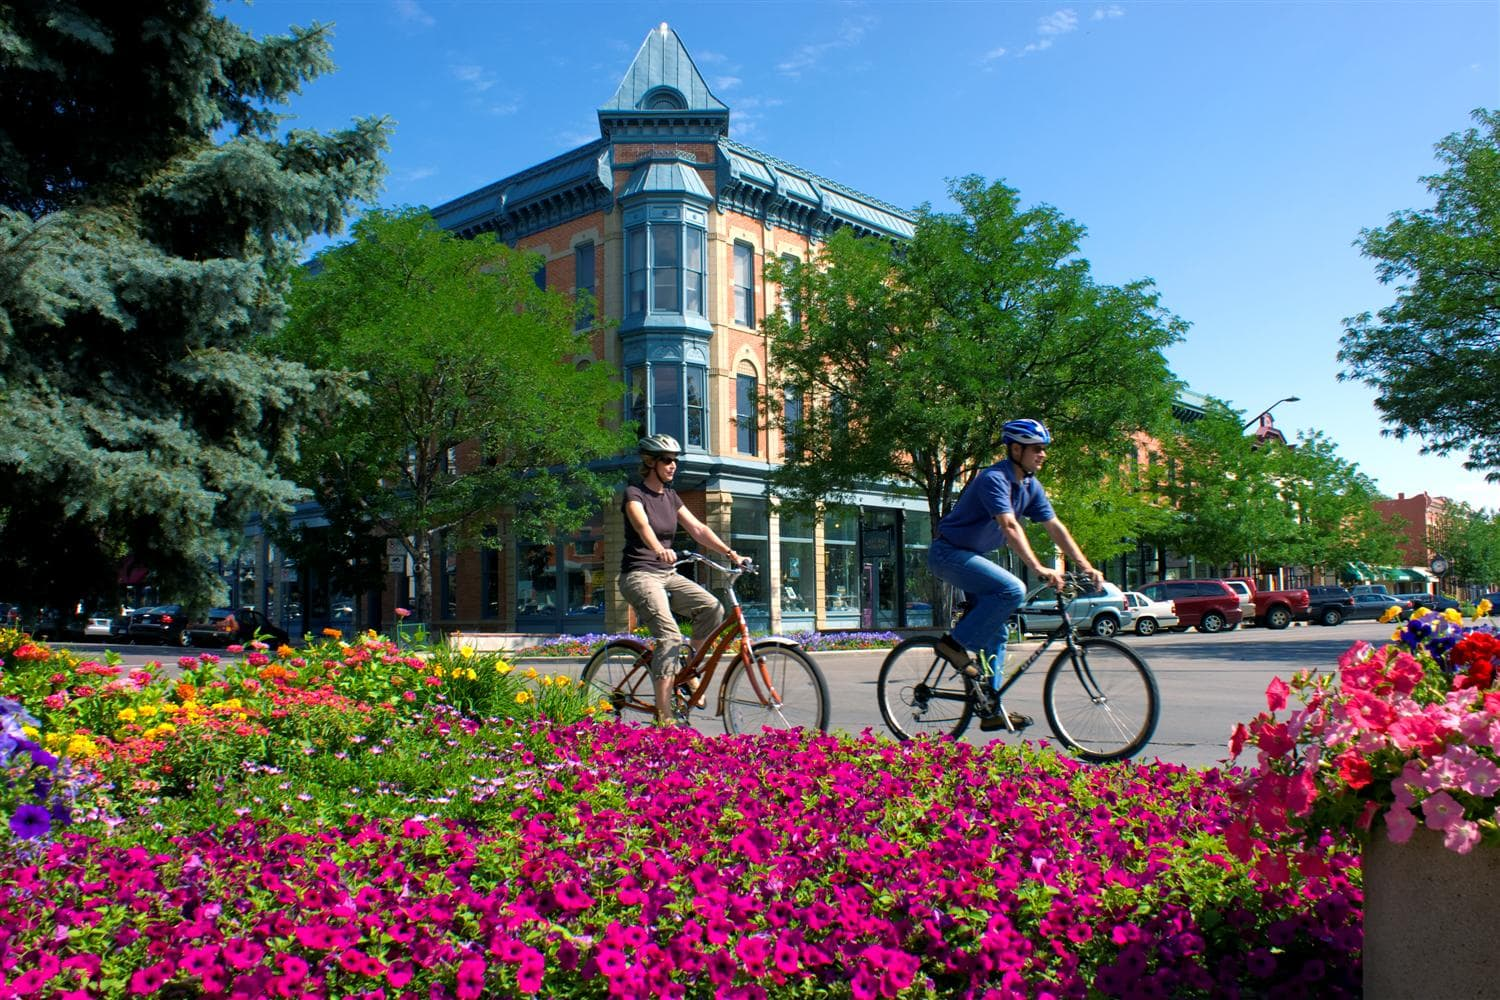 Downtown_Fort_Collins_Colorado-min.jpg